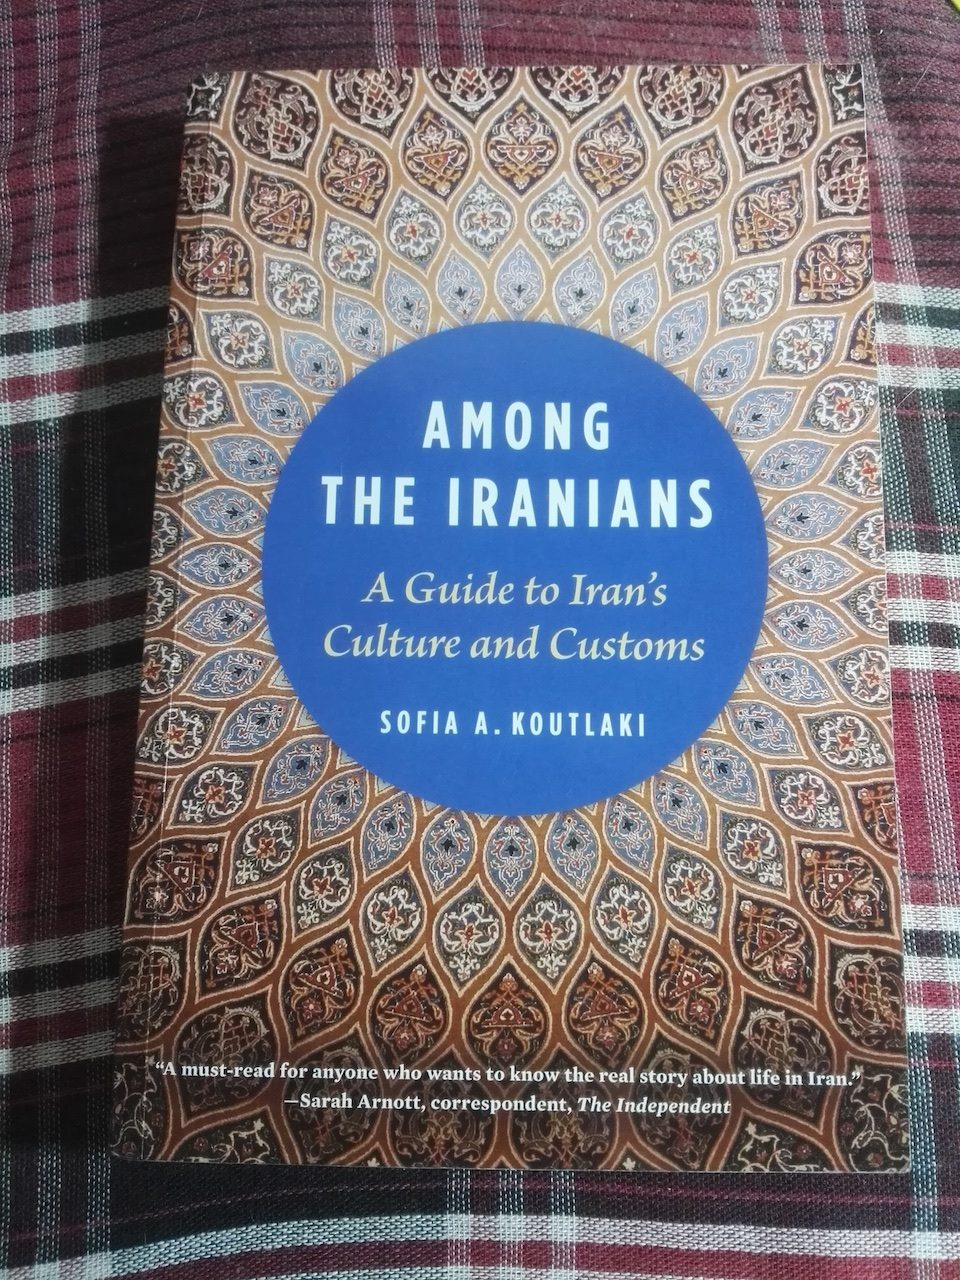 Sofia Koutlaki - Among the Iranians